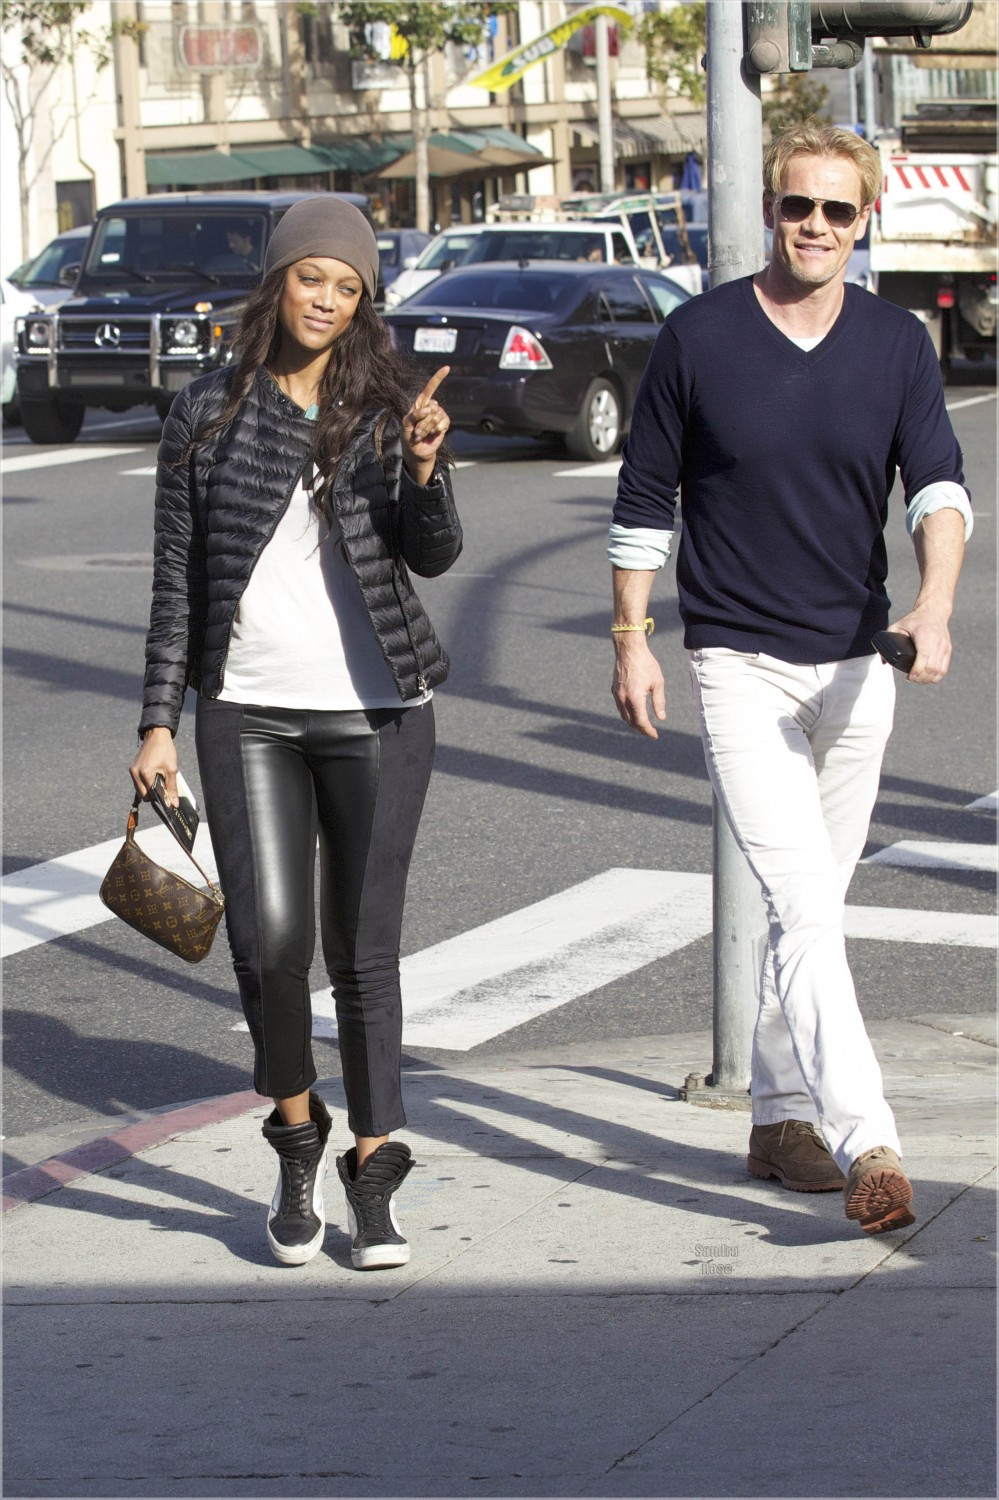 Tyra Banks and new boyfriend out for lunch | Sandra Rose